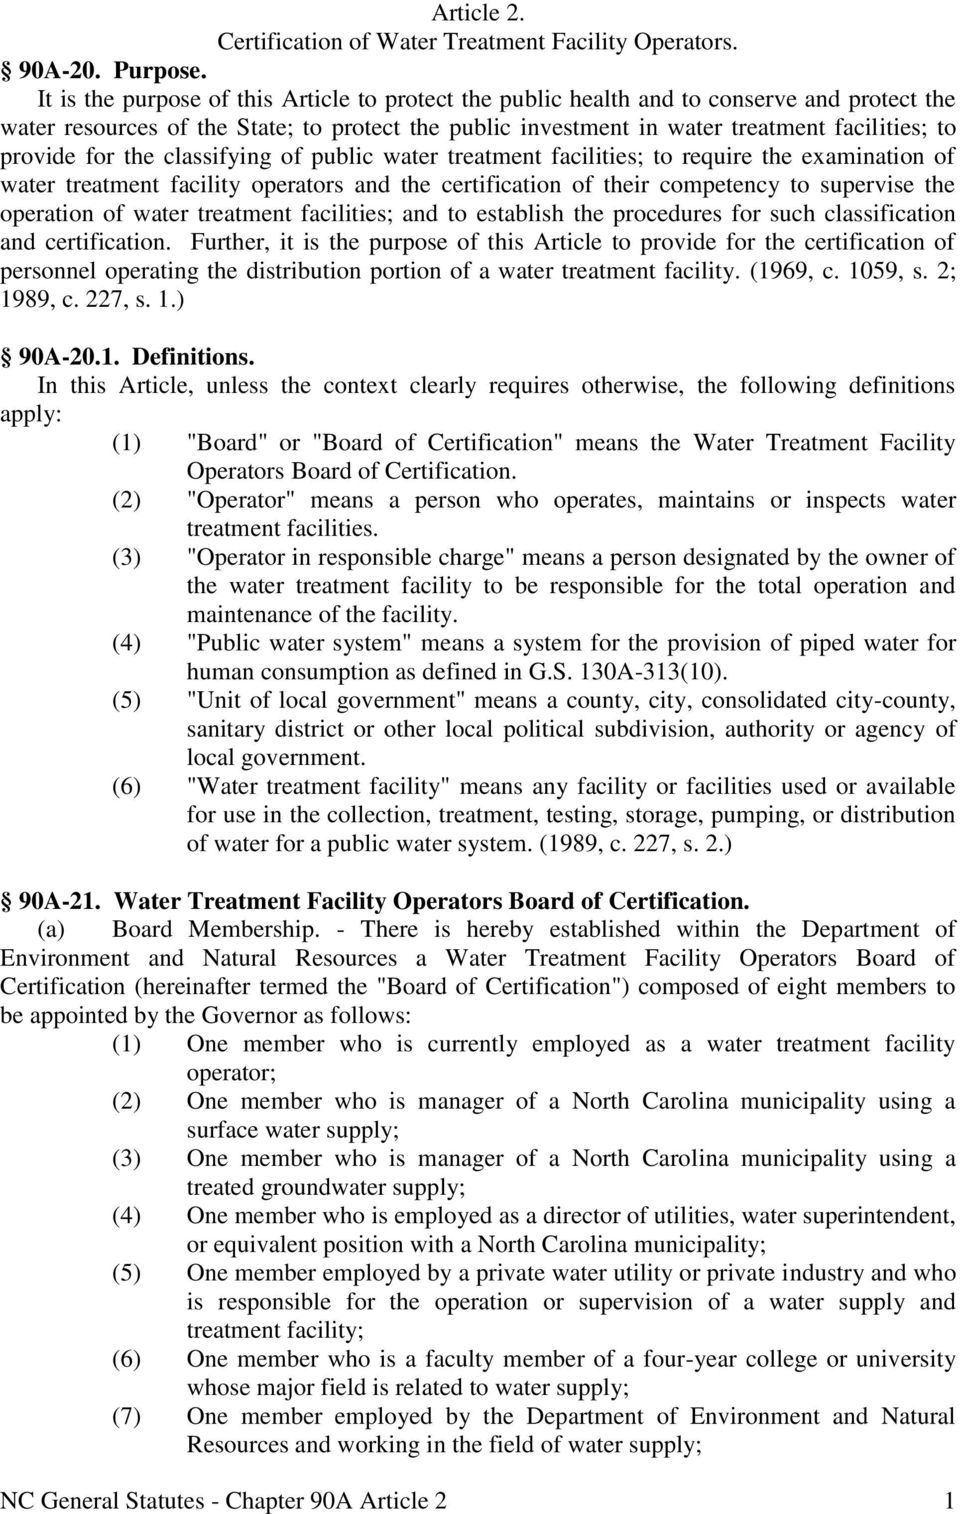 for the classifying of public water treatment facilities; to require the examination of water treatment facility operators and the certification of their competency to supervise the operation of